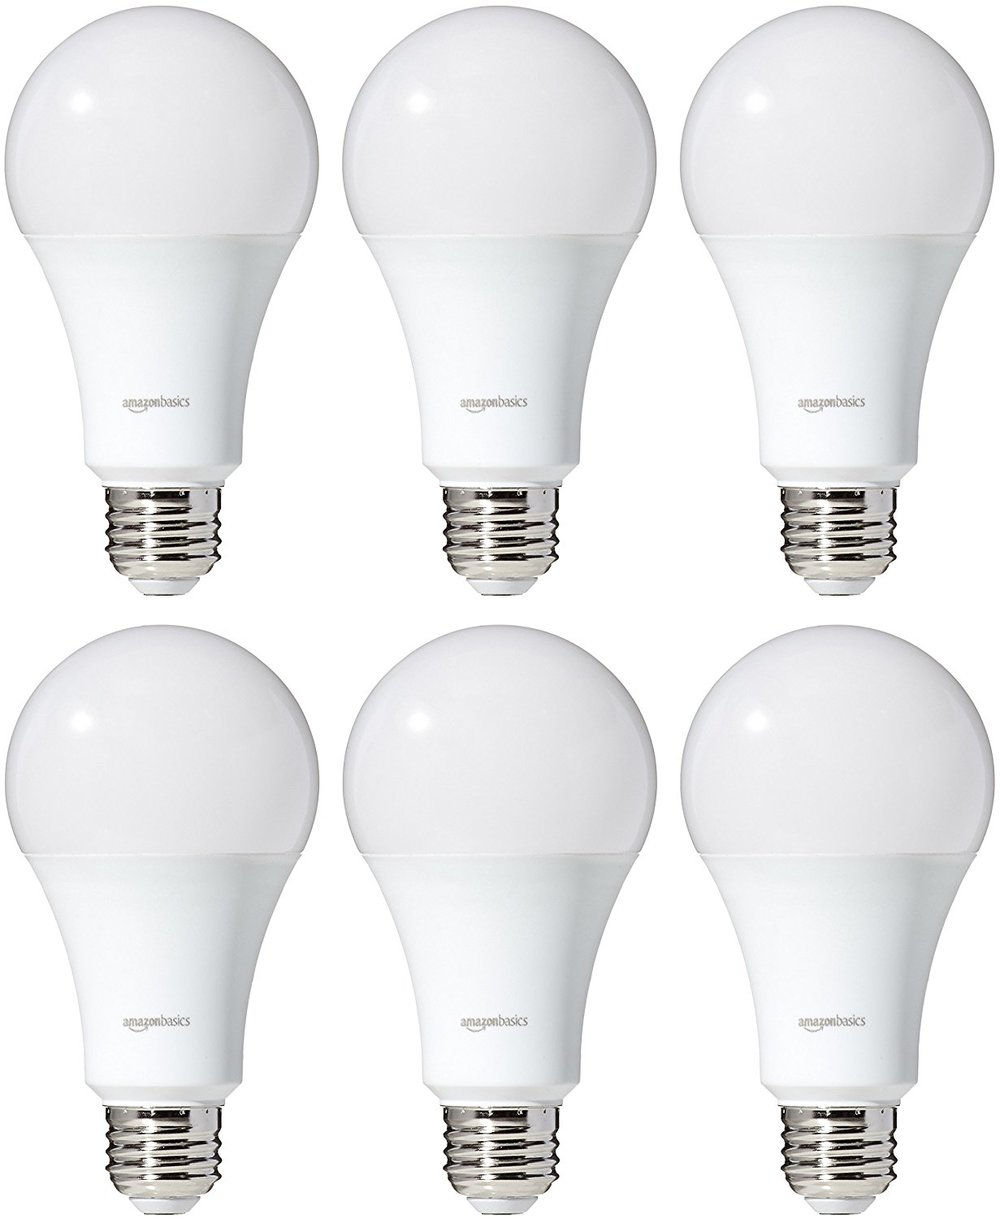 LED light bulbs -